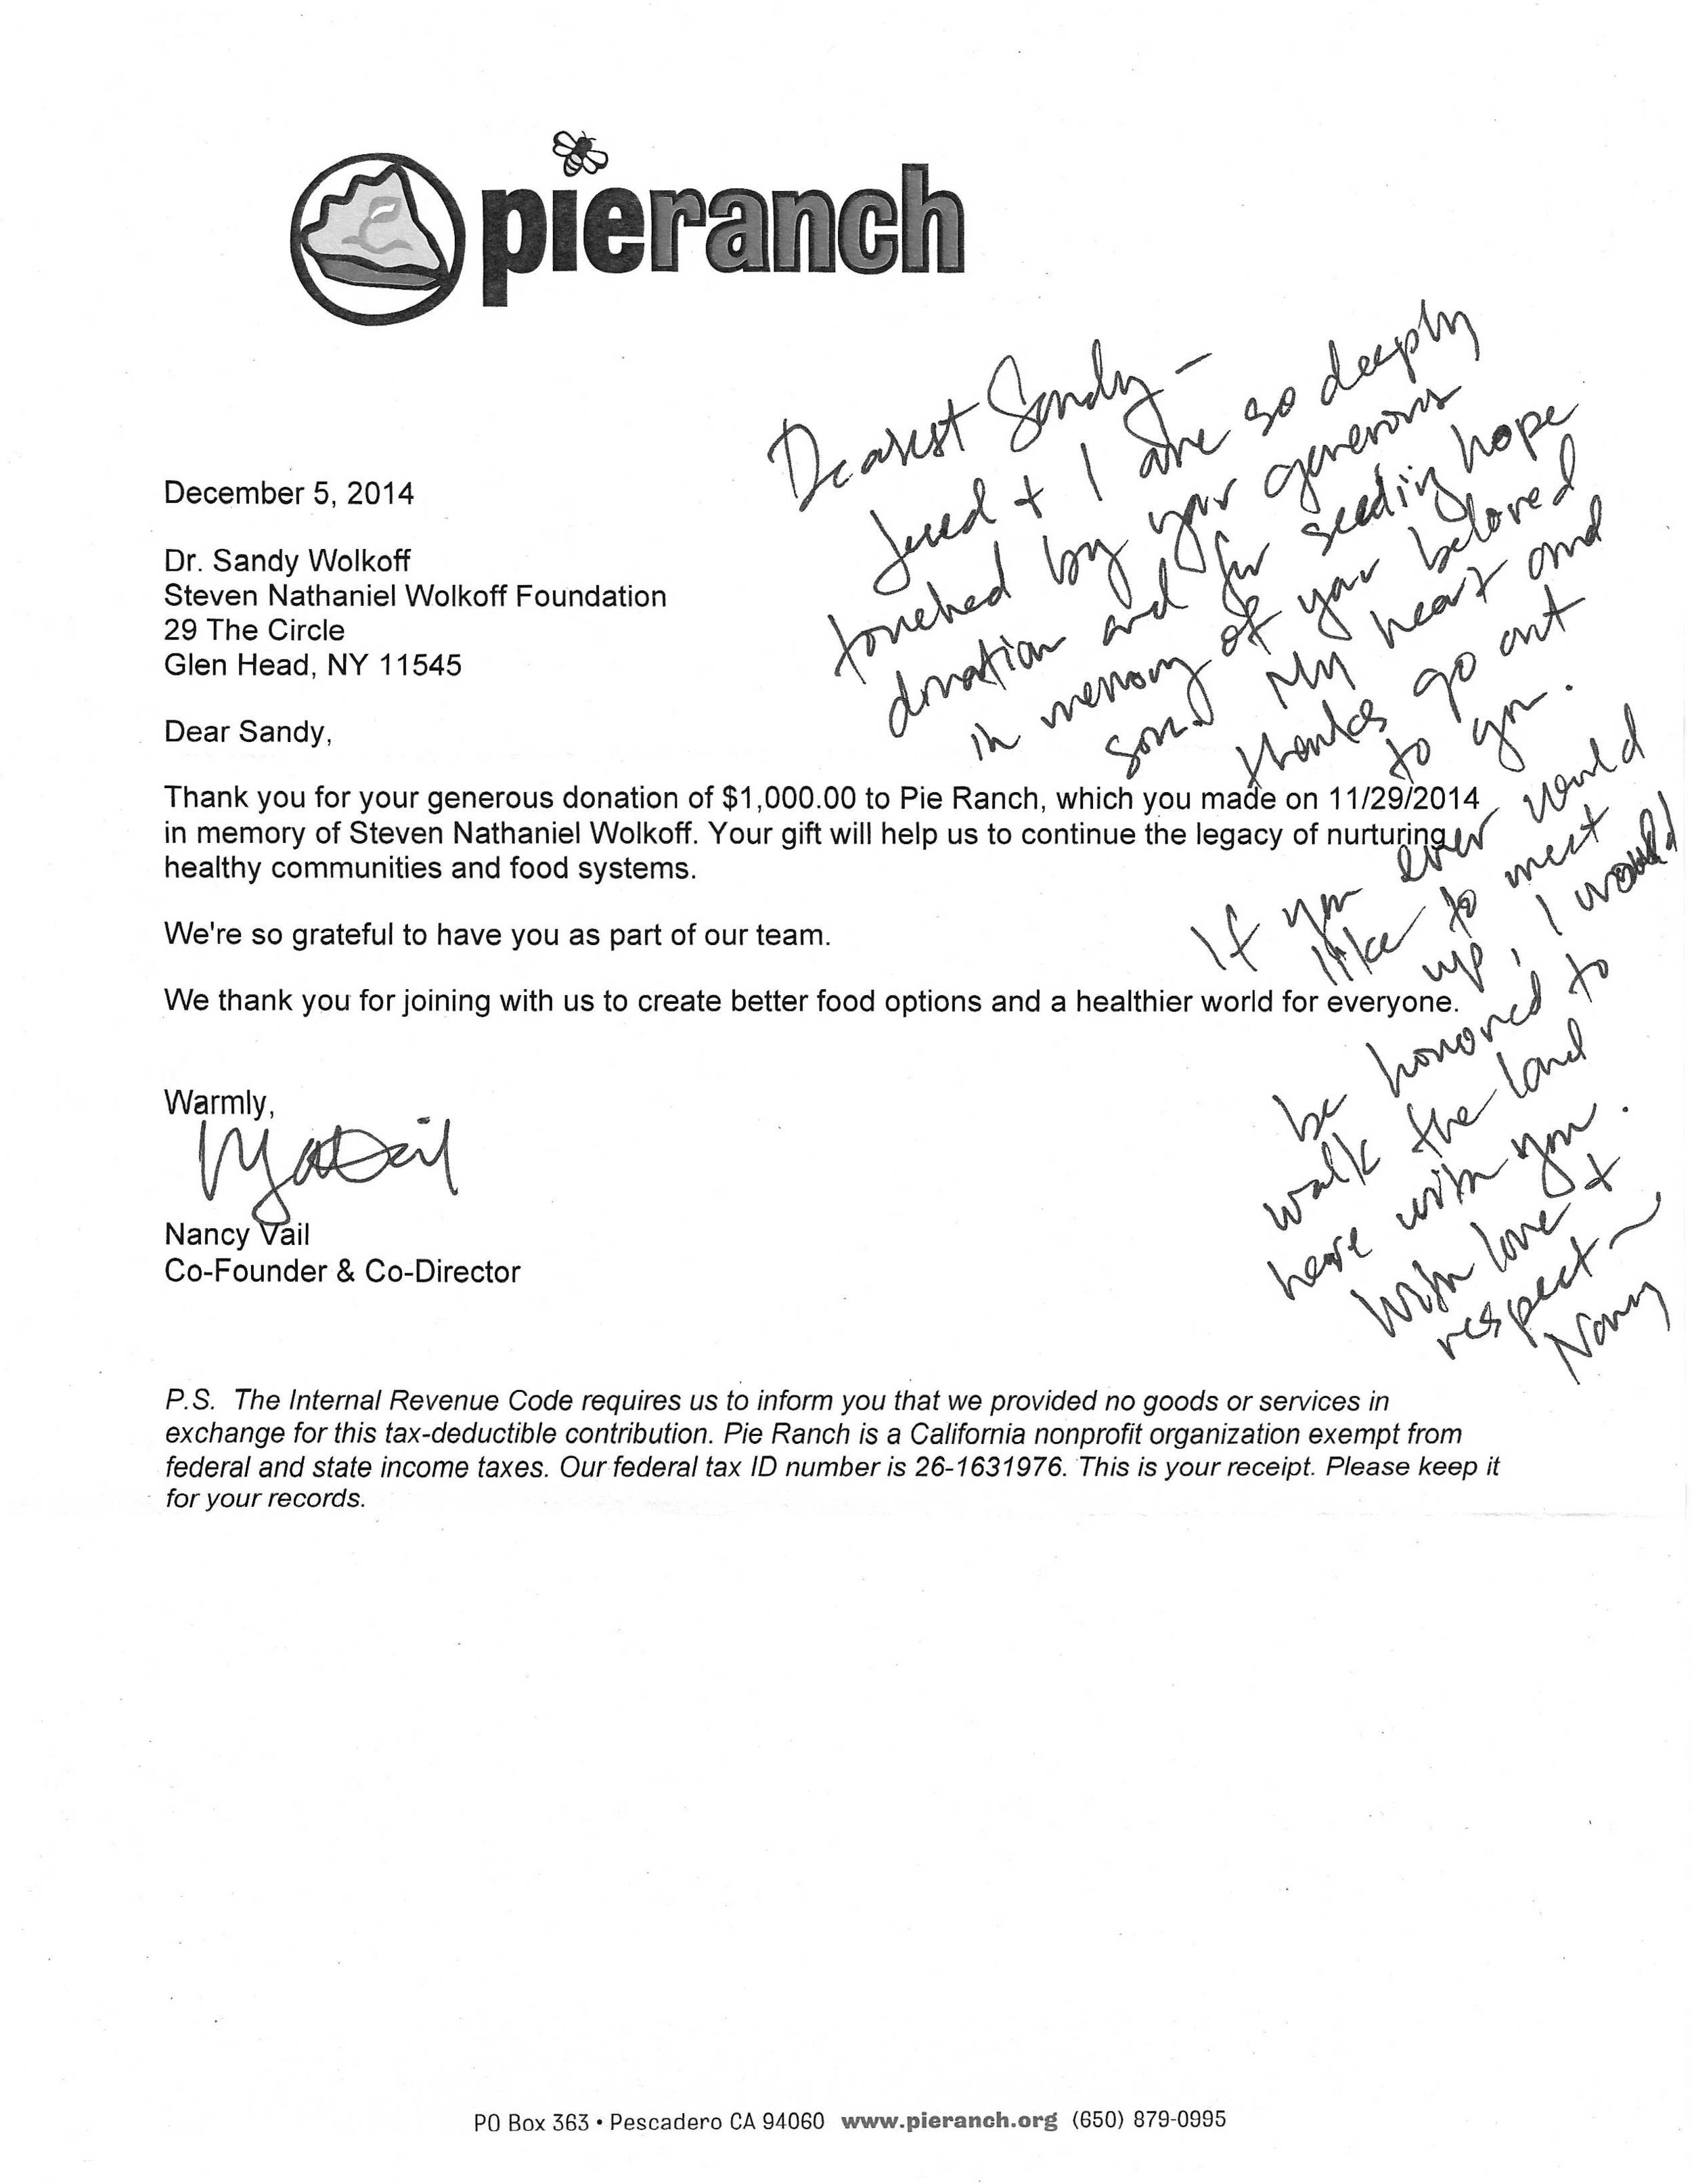 2014 letters thanks-PR and 826(1)_Page_1.jpg